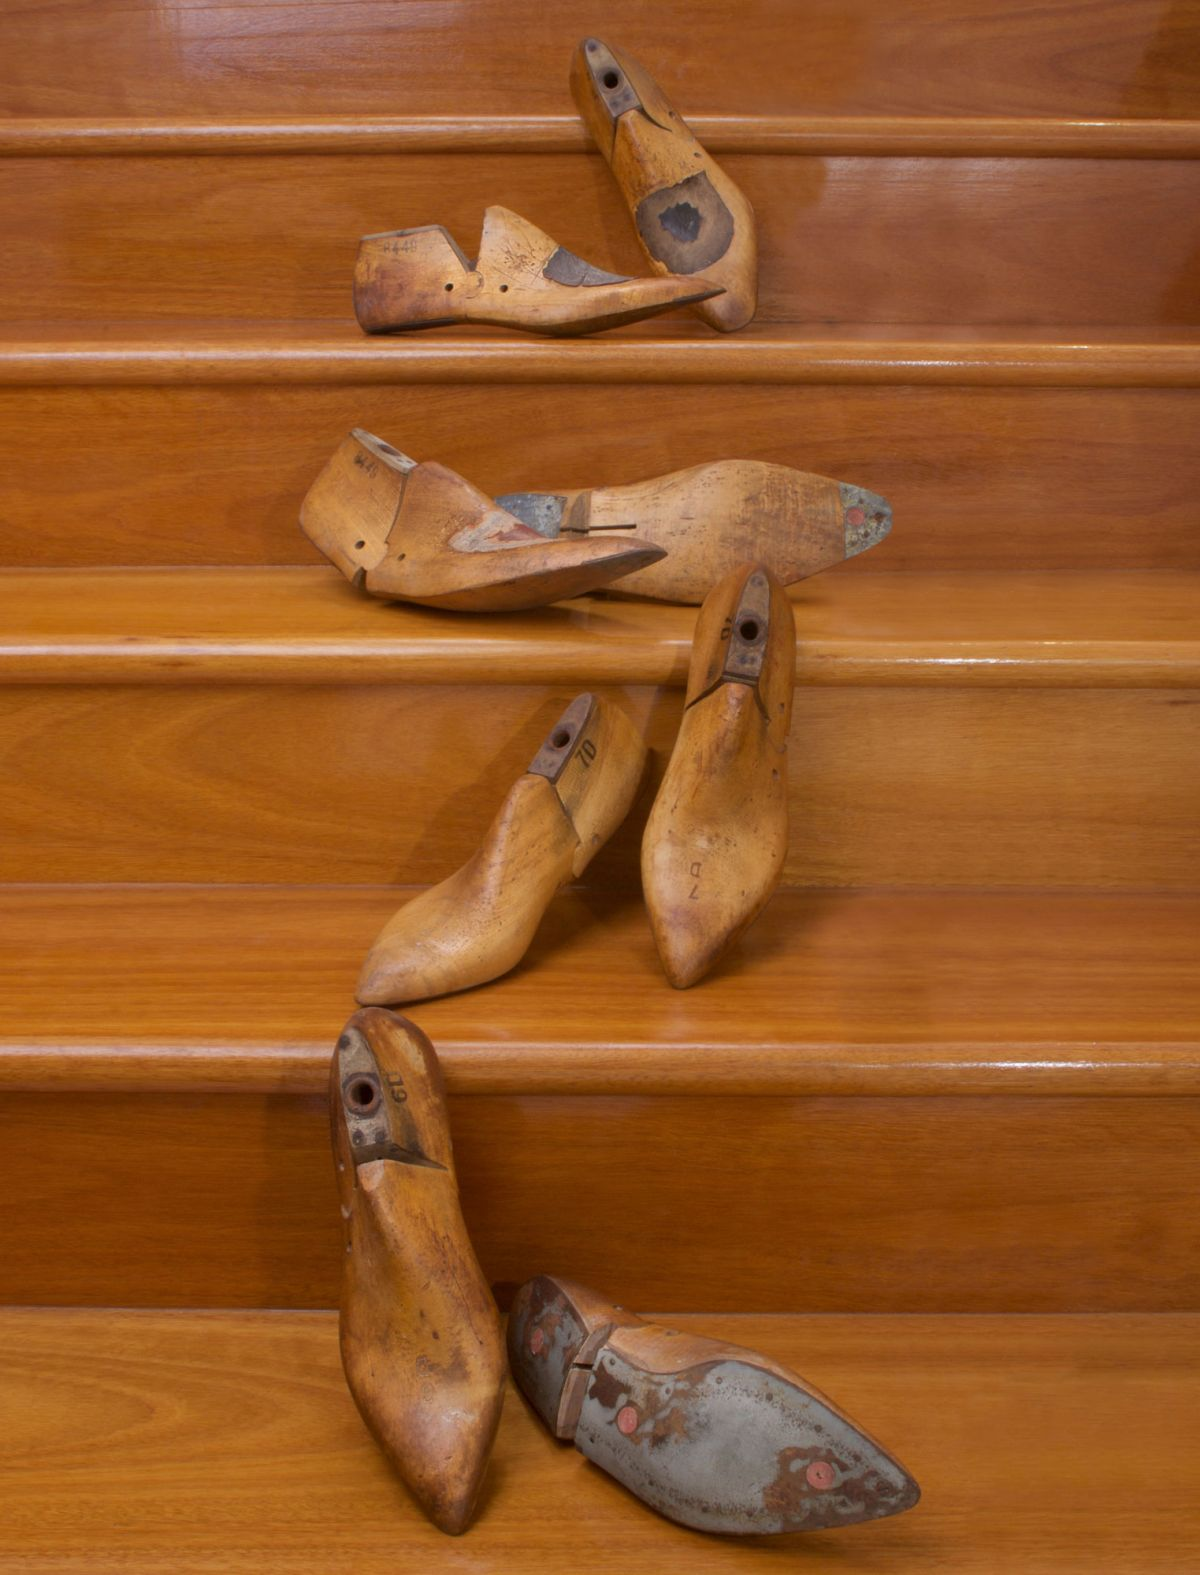 BEAUTIFUL PAIRS OF VINTAGE HAND-CRAFTED, BESPOKE WOODEN SHOE LASTS